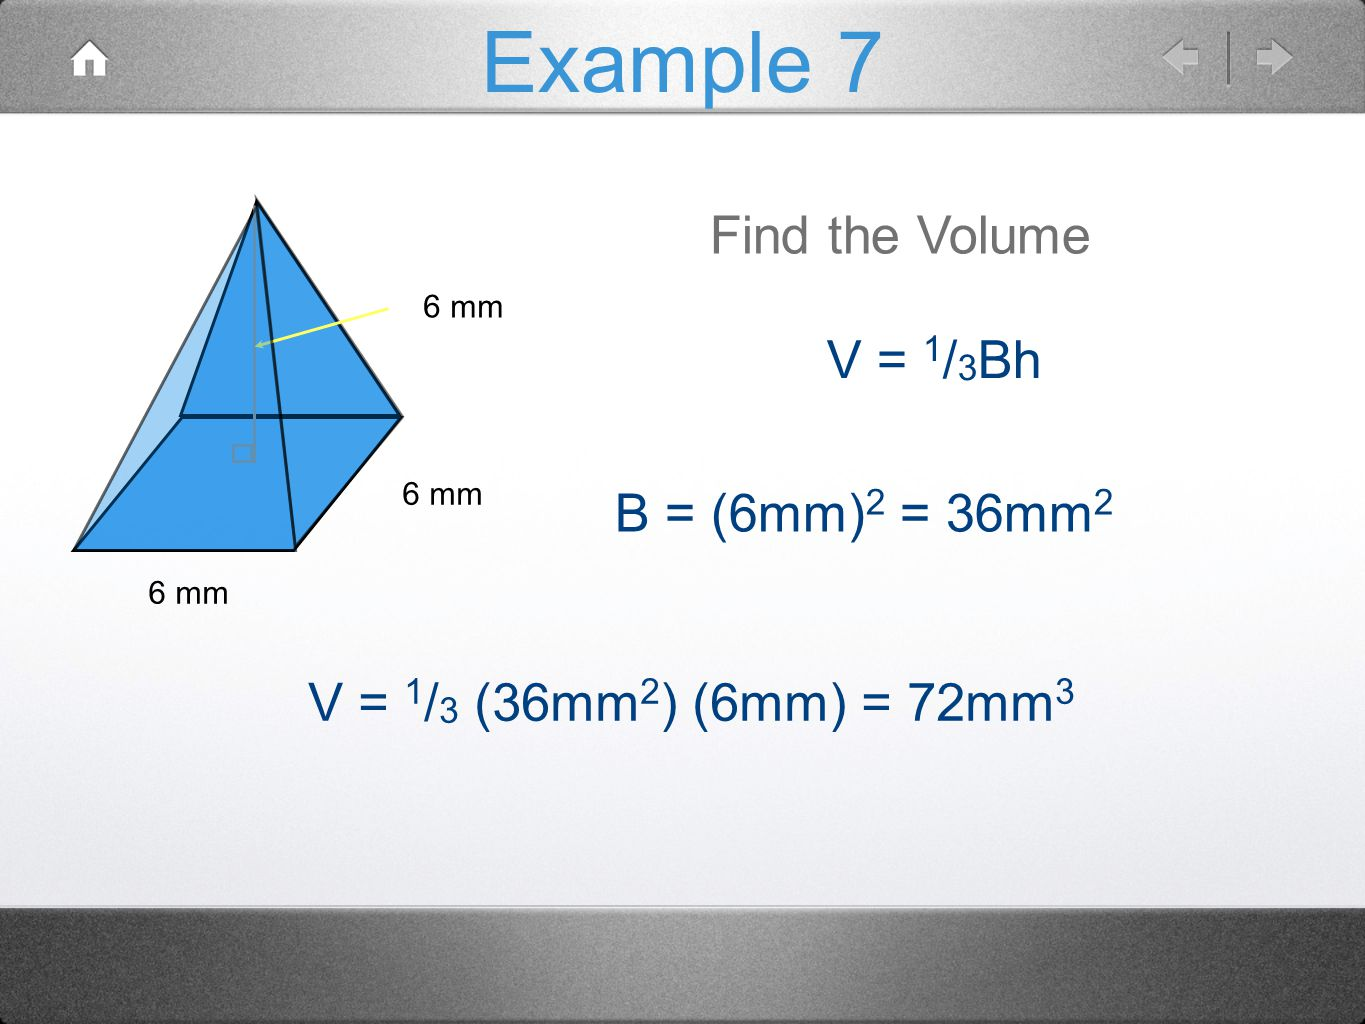 Example 7 6 mm Find the Volume V = 1 / 3 Bh B = (6mm) 2 = 36mm 2 V = 1 / 3 (36mm 2 ) (6mm) = 72mm 3